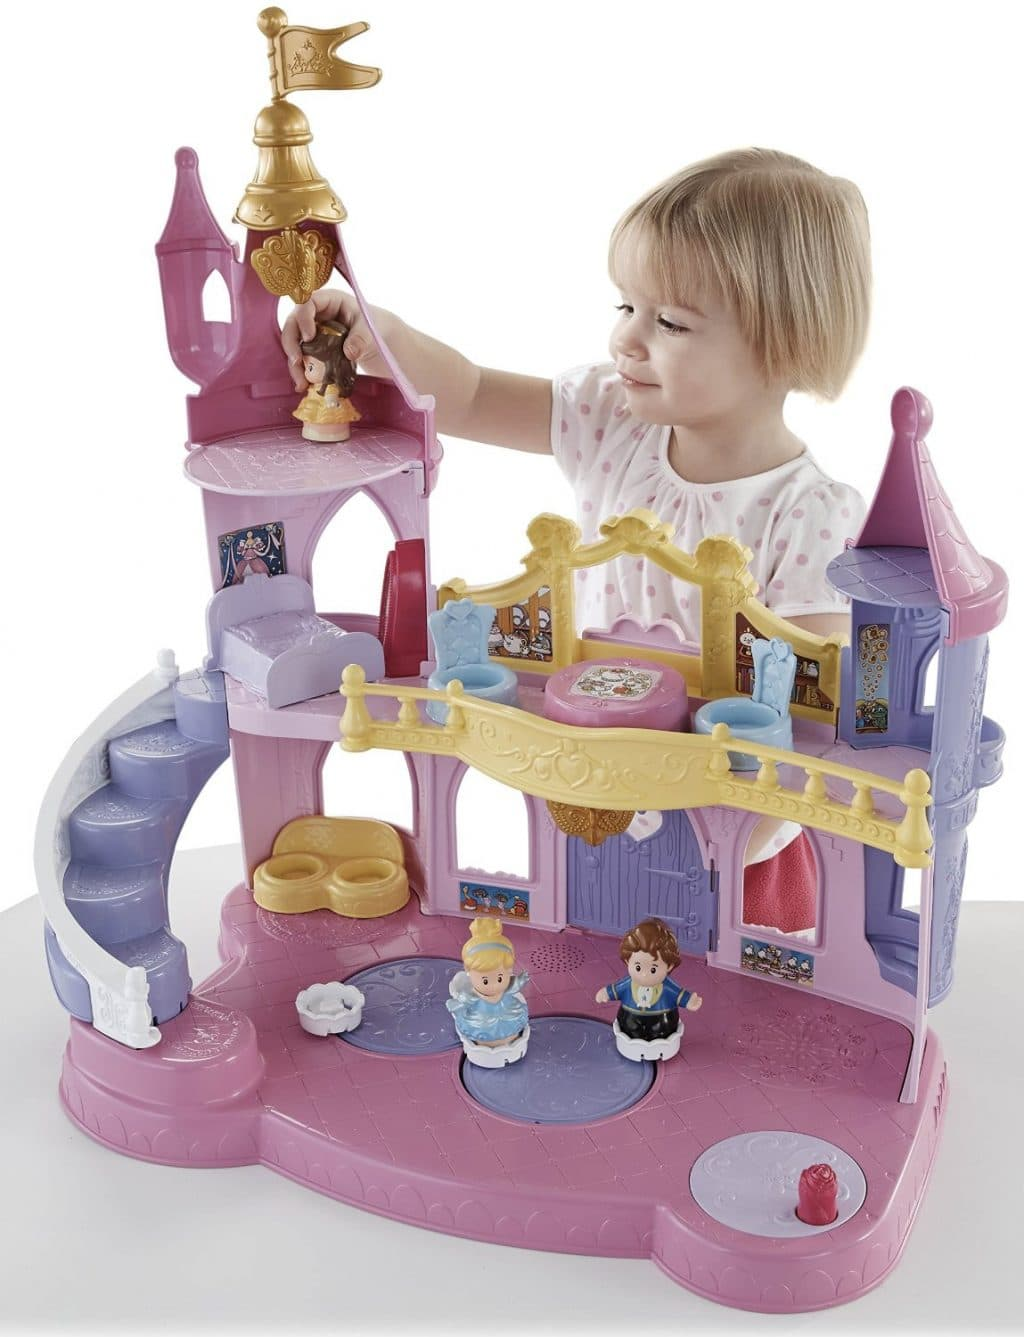 Little People Disney Princess Musical Dancing Palace Only $18.90! (Reg. $30!)